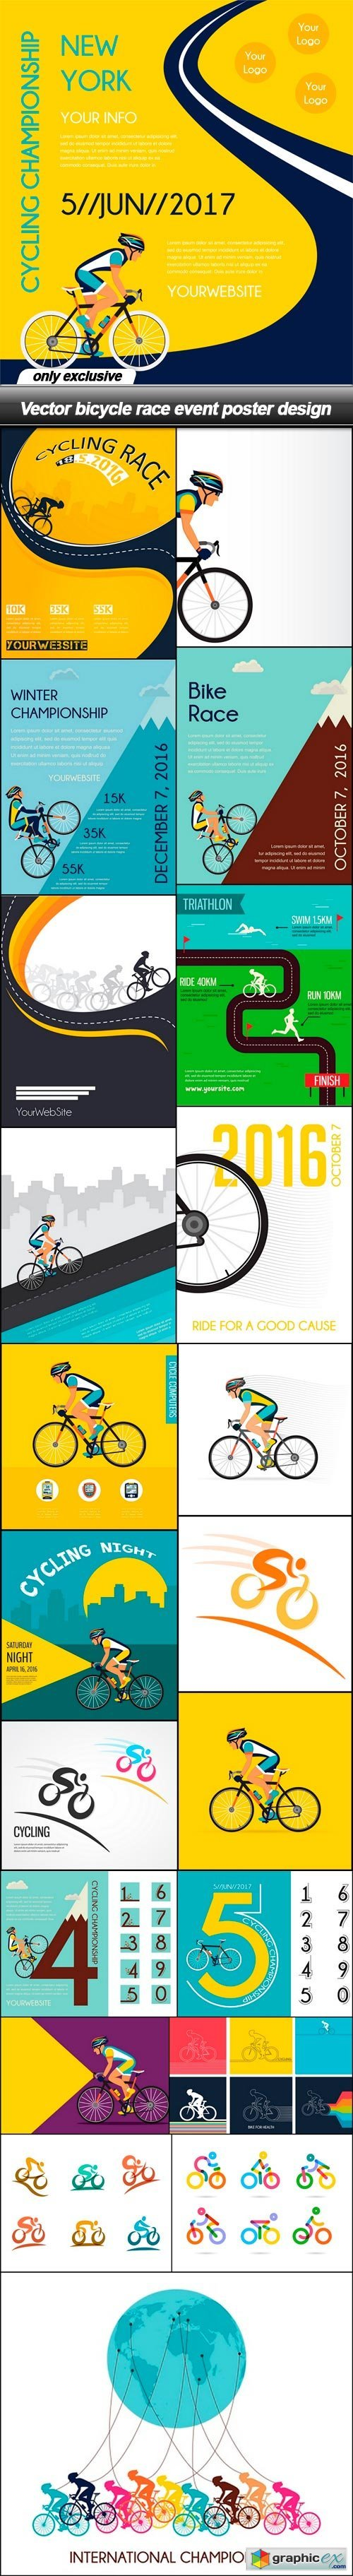 Bicycle race event poster design - 22 EPS